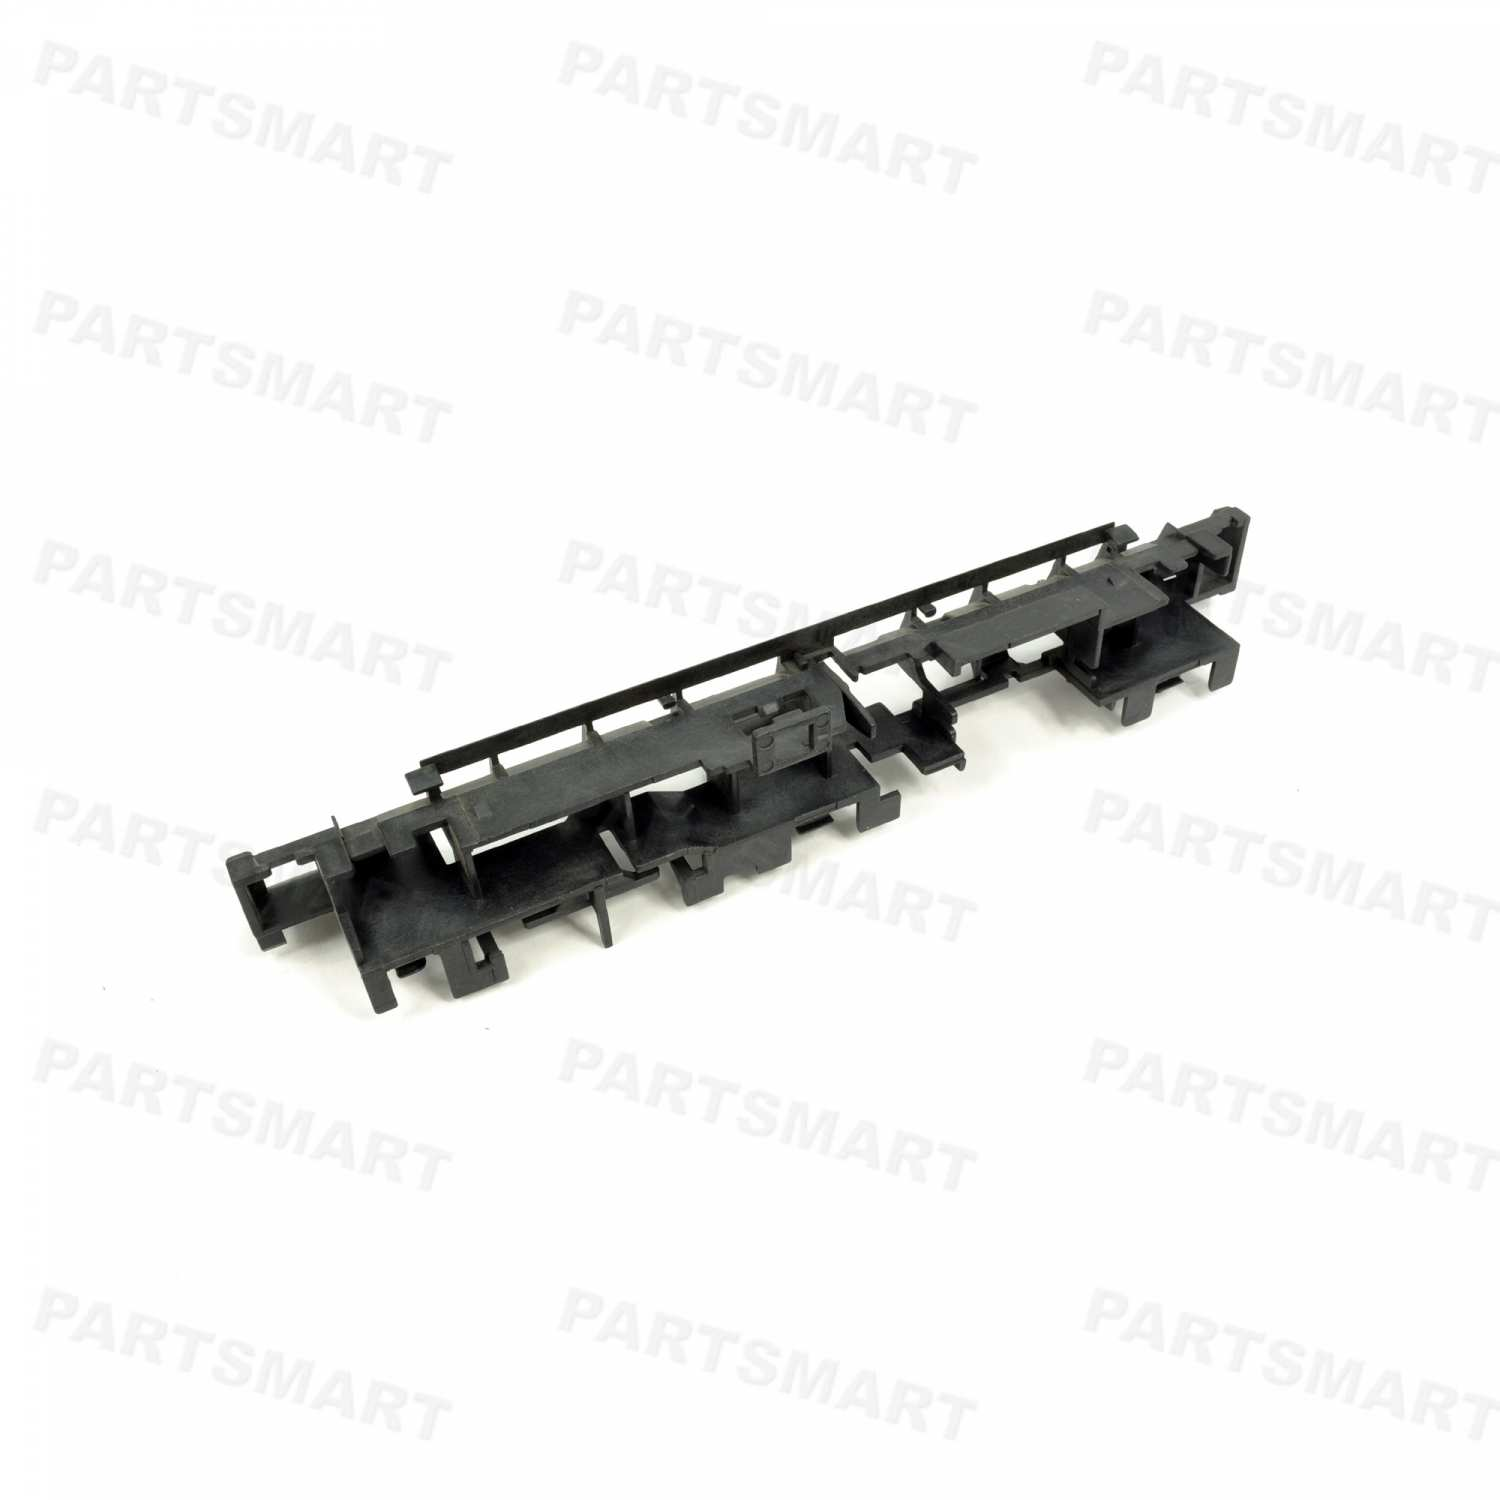 RB2-4882-000 Guide, Lower Delivery for HP LaserJet 4100